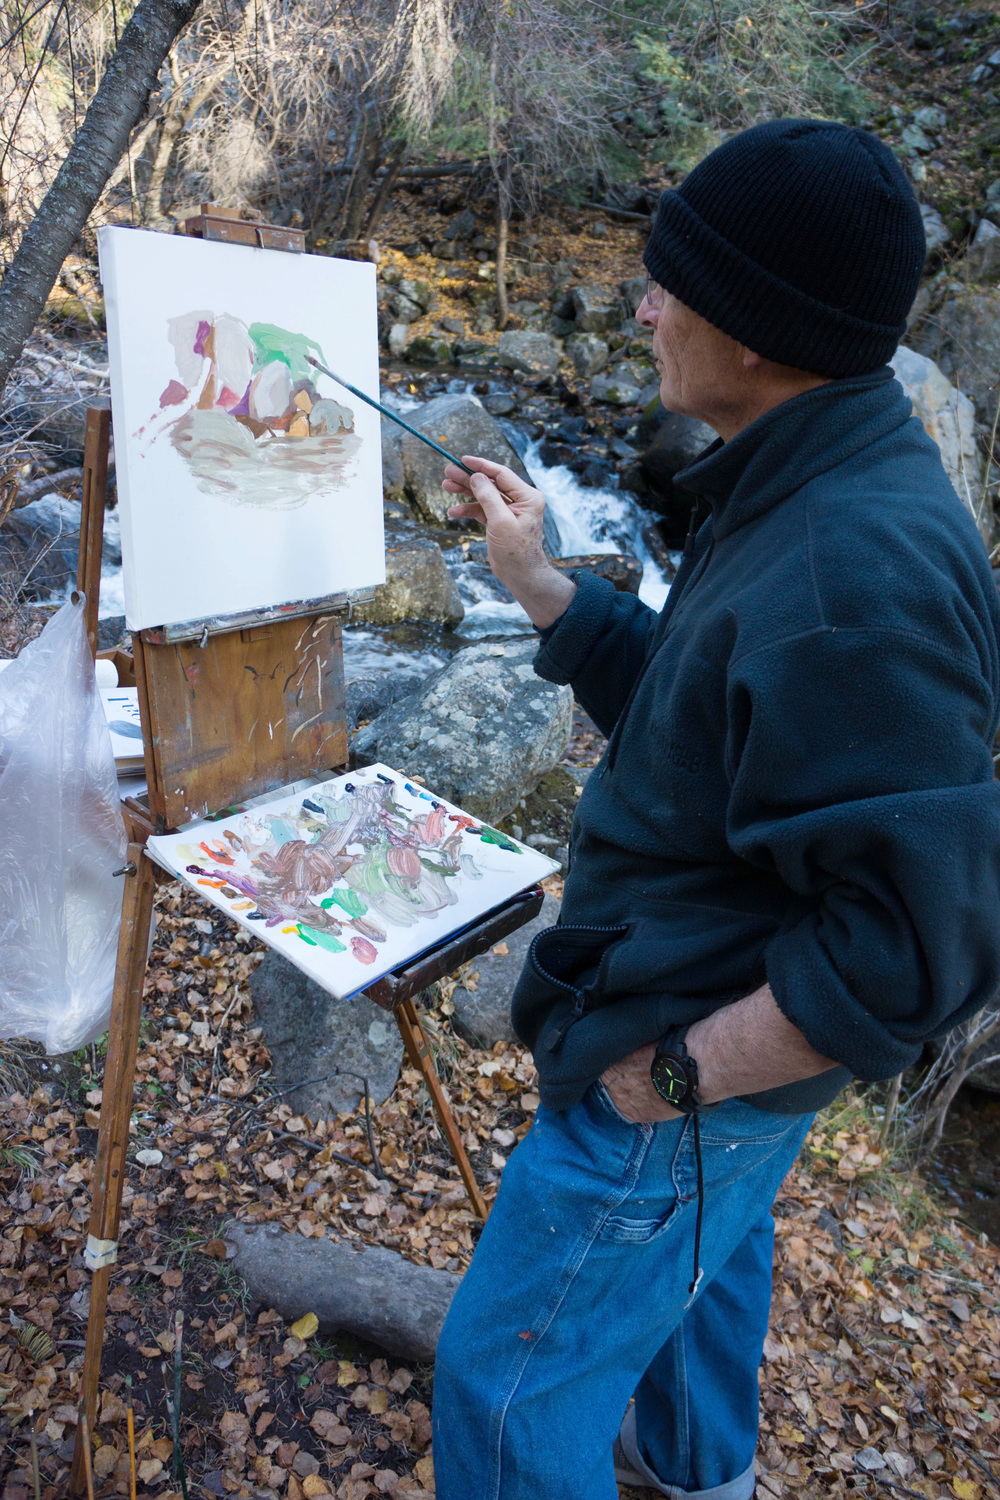 site-LR 10.27.13 LR-RAW-PT paints N. Crestone Creek 16x16.jpg